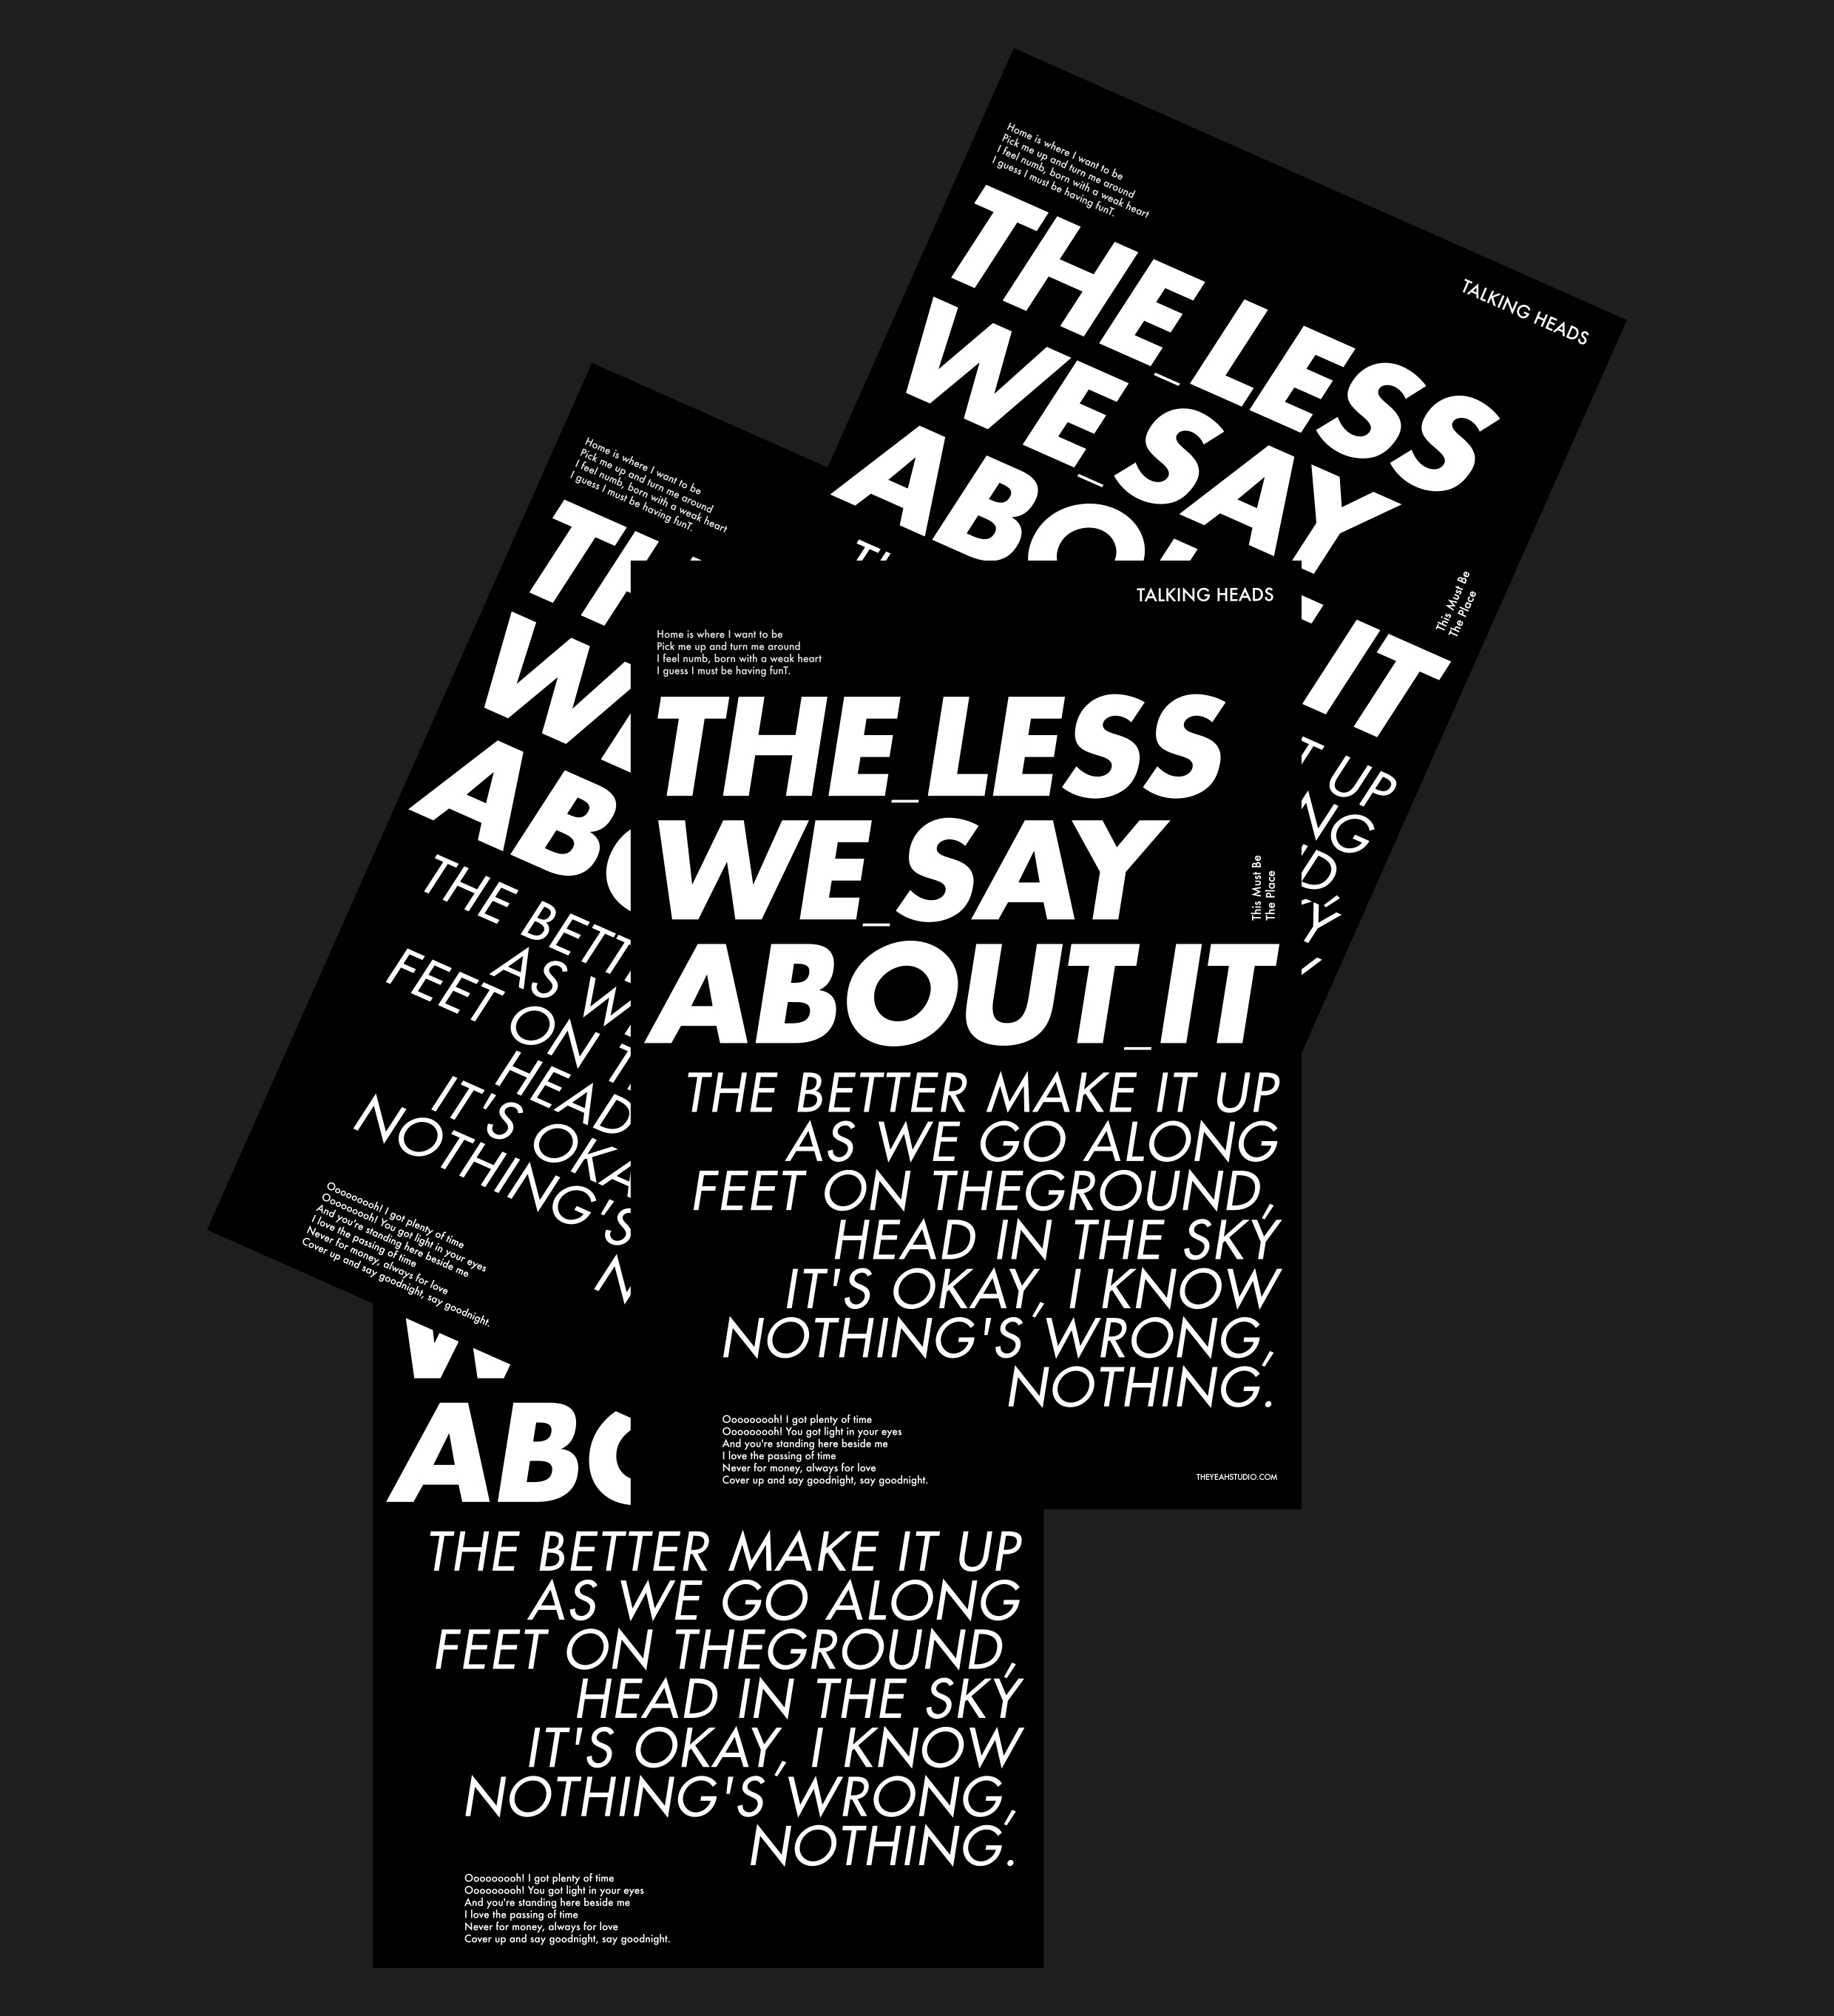 THE LESS_TH_2